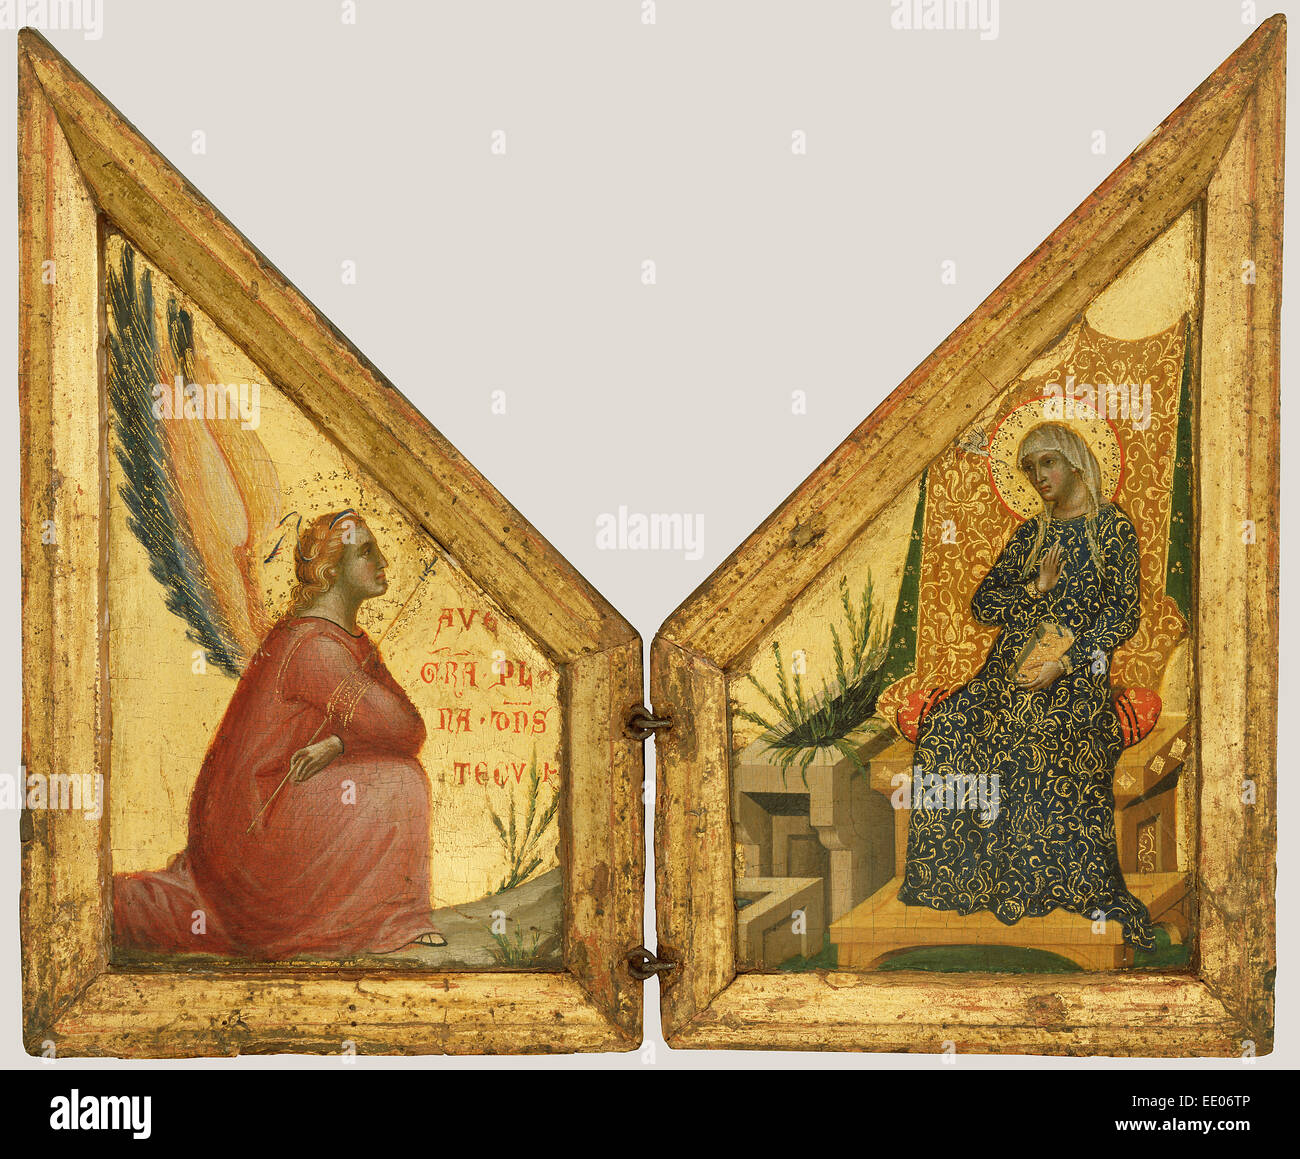 The Annunciation; Paolo Veneziano, Italian (Venetian), active 1333 - 1358; Italy, Europe; about 1348 - 1350 - Stock Image